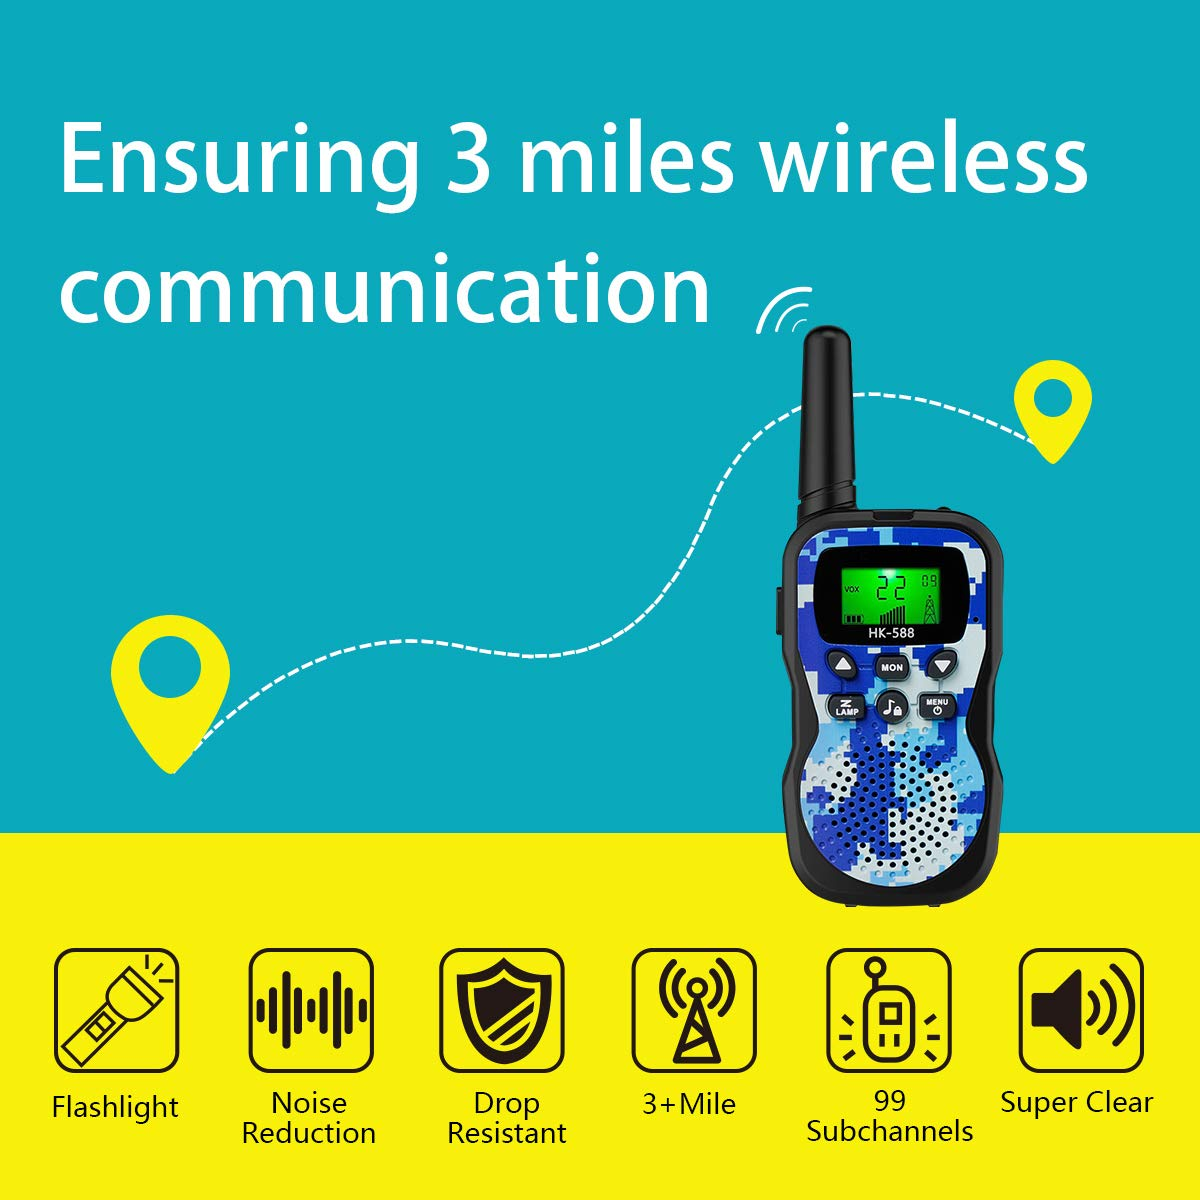 Walkie Talkies For Kids , Range Up to 3 Miles With Backlit LCD Display And Flashlight Walkie Talkies For Boys Girls Outdoor Toys For 3-12 Year Old Boys Girls Bset Gifts For 3-12 Year Old Boys Girls by Sun-Team (Image #5)